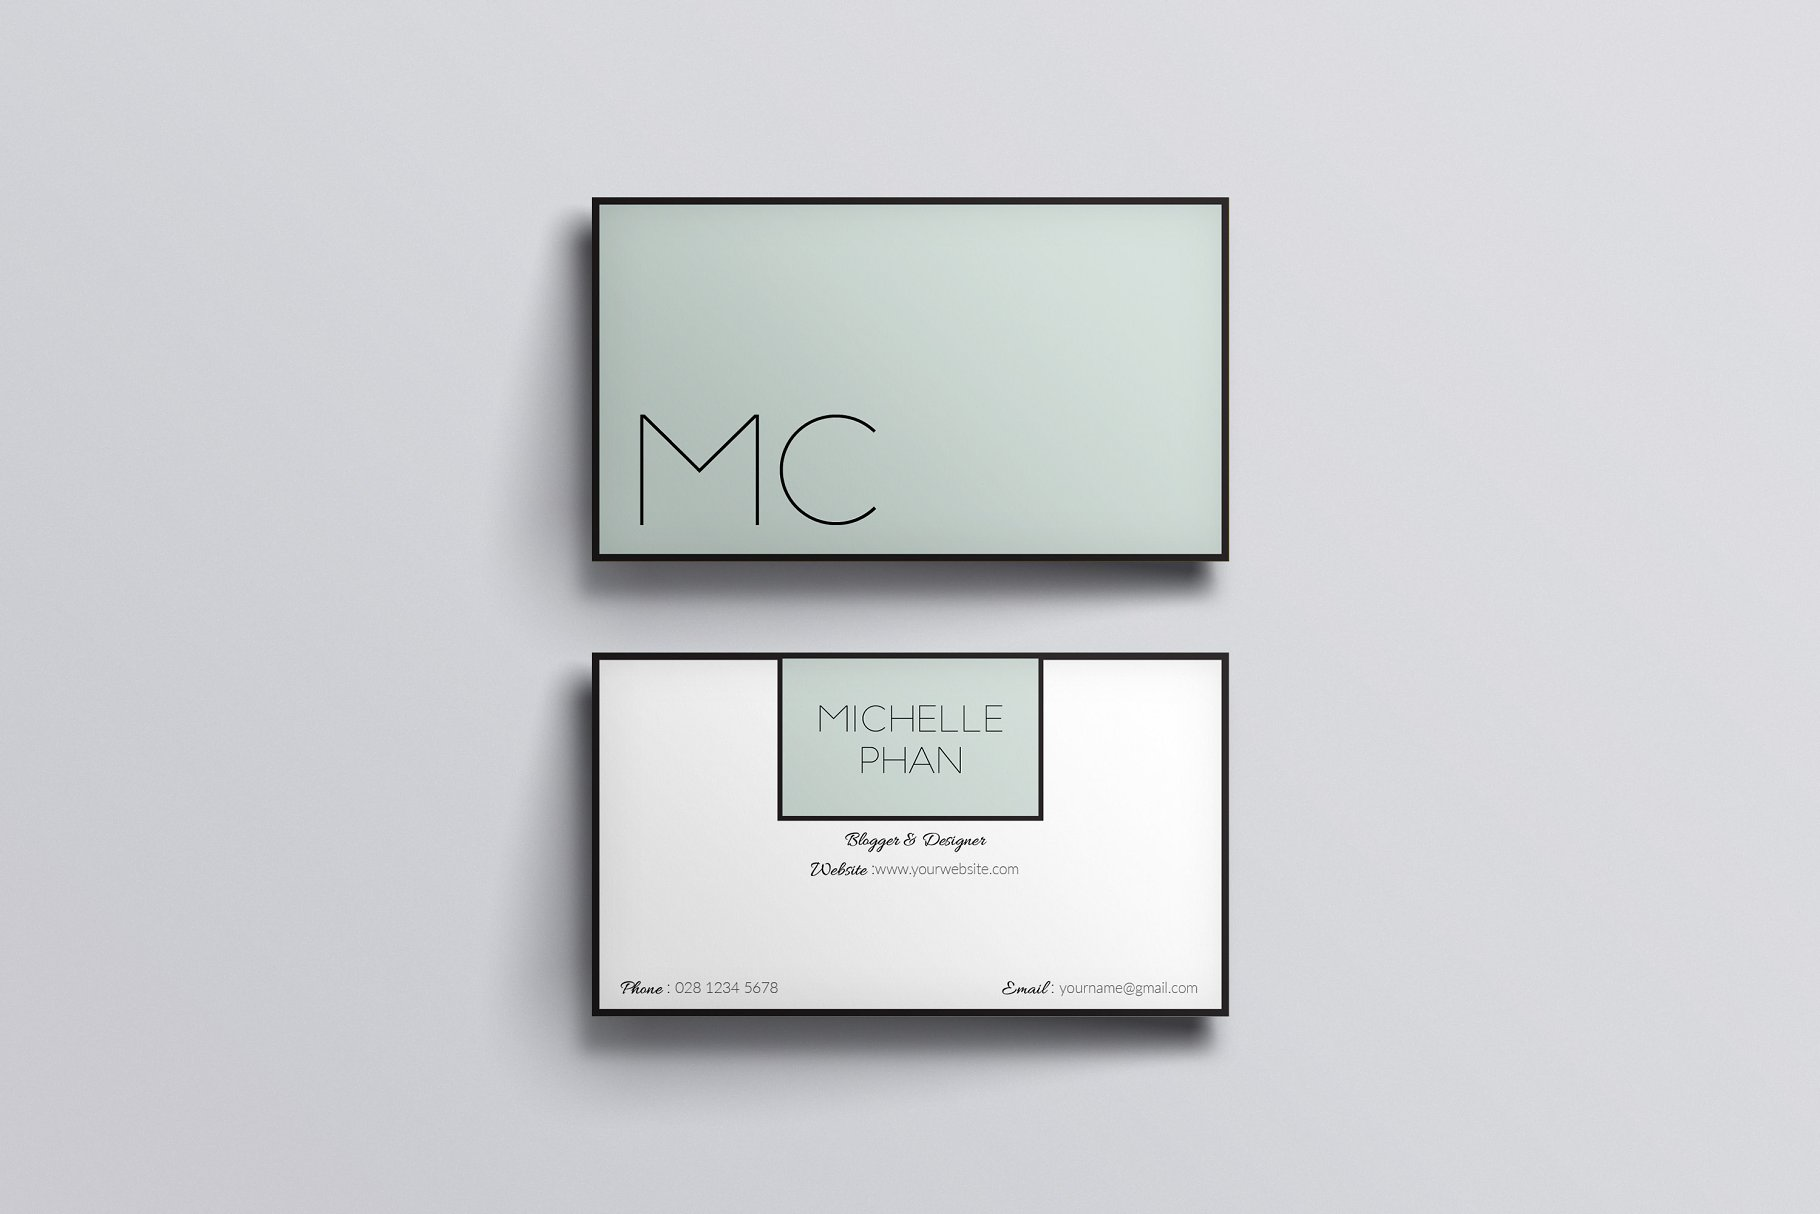 Elegant business card template - Business Card Templates | Creative ...